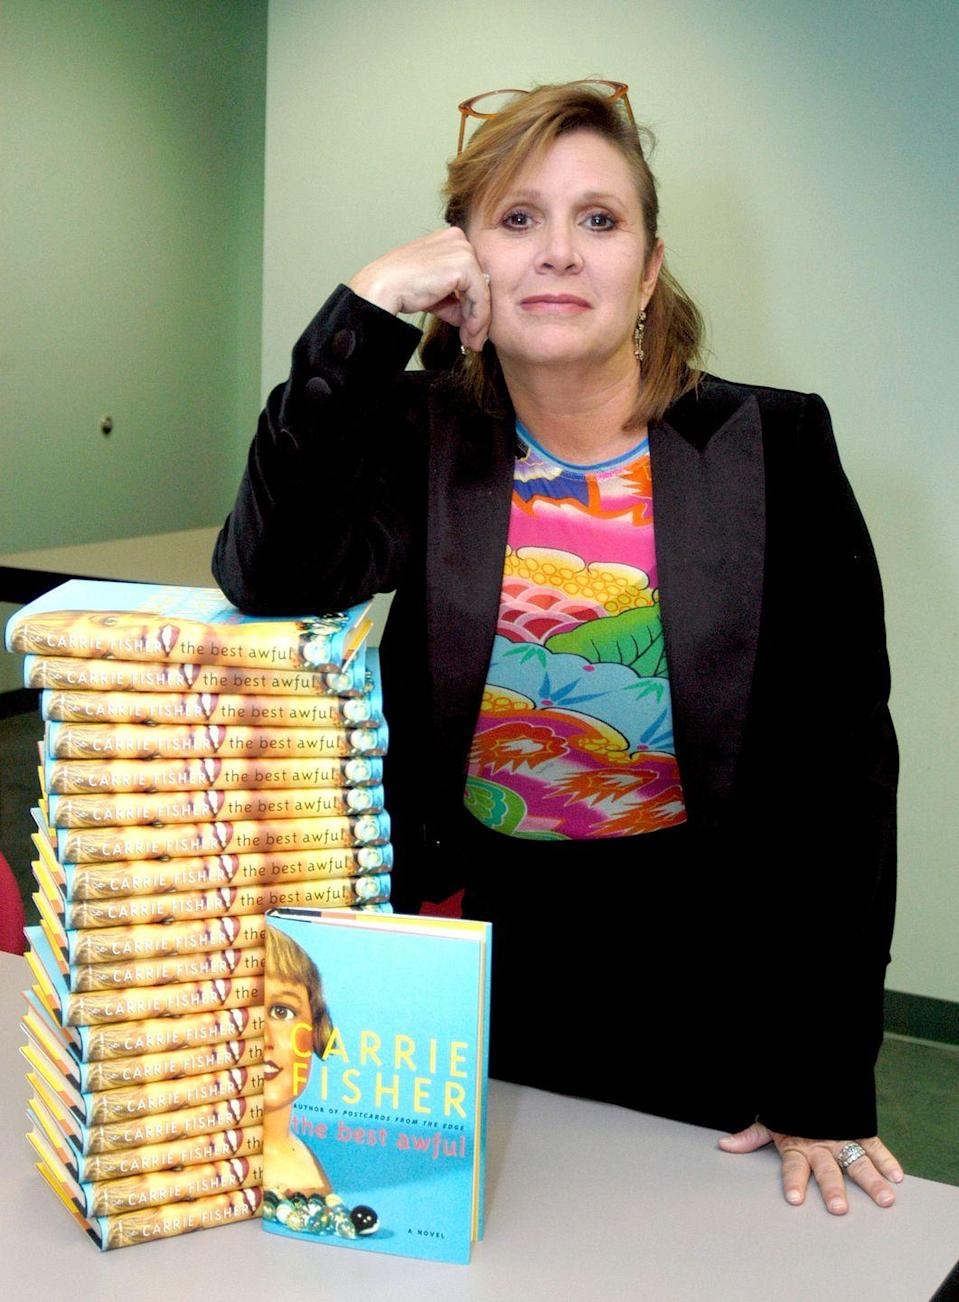 "<p>Carrie churned out another semi-autographical novel with <a href=""https://www.amazon.com/Best-Awful-Novel-Carrie-Fisher/dp/0743269306?tag=syn-yahoo-20&ascsubtag=%5Bartid%7C10055.g.32222003%5Bsrc%7Cyahoo-us"" rel=""nofollow noopener"" target=""_blank"" data-ylk=""slk:The"" class=""link rapid-noclick-resp""><em>The </em></a><em><a href=""https://www.amazon.com/Best-Awful-Novel-Carrie-Fisher/dp/0743269306"" rel=""nofollow noopener"" target=""_blank"" data-ylk=""slk:Best Awful"" class=""link rapid-noclick-resp"">Best Awful</a></em>. Her fourth novel used comedy to discuss the funny and sad aspects of living with a mental illness.</p>"